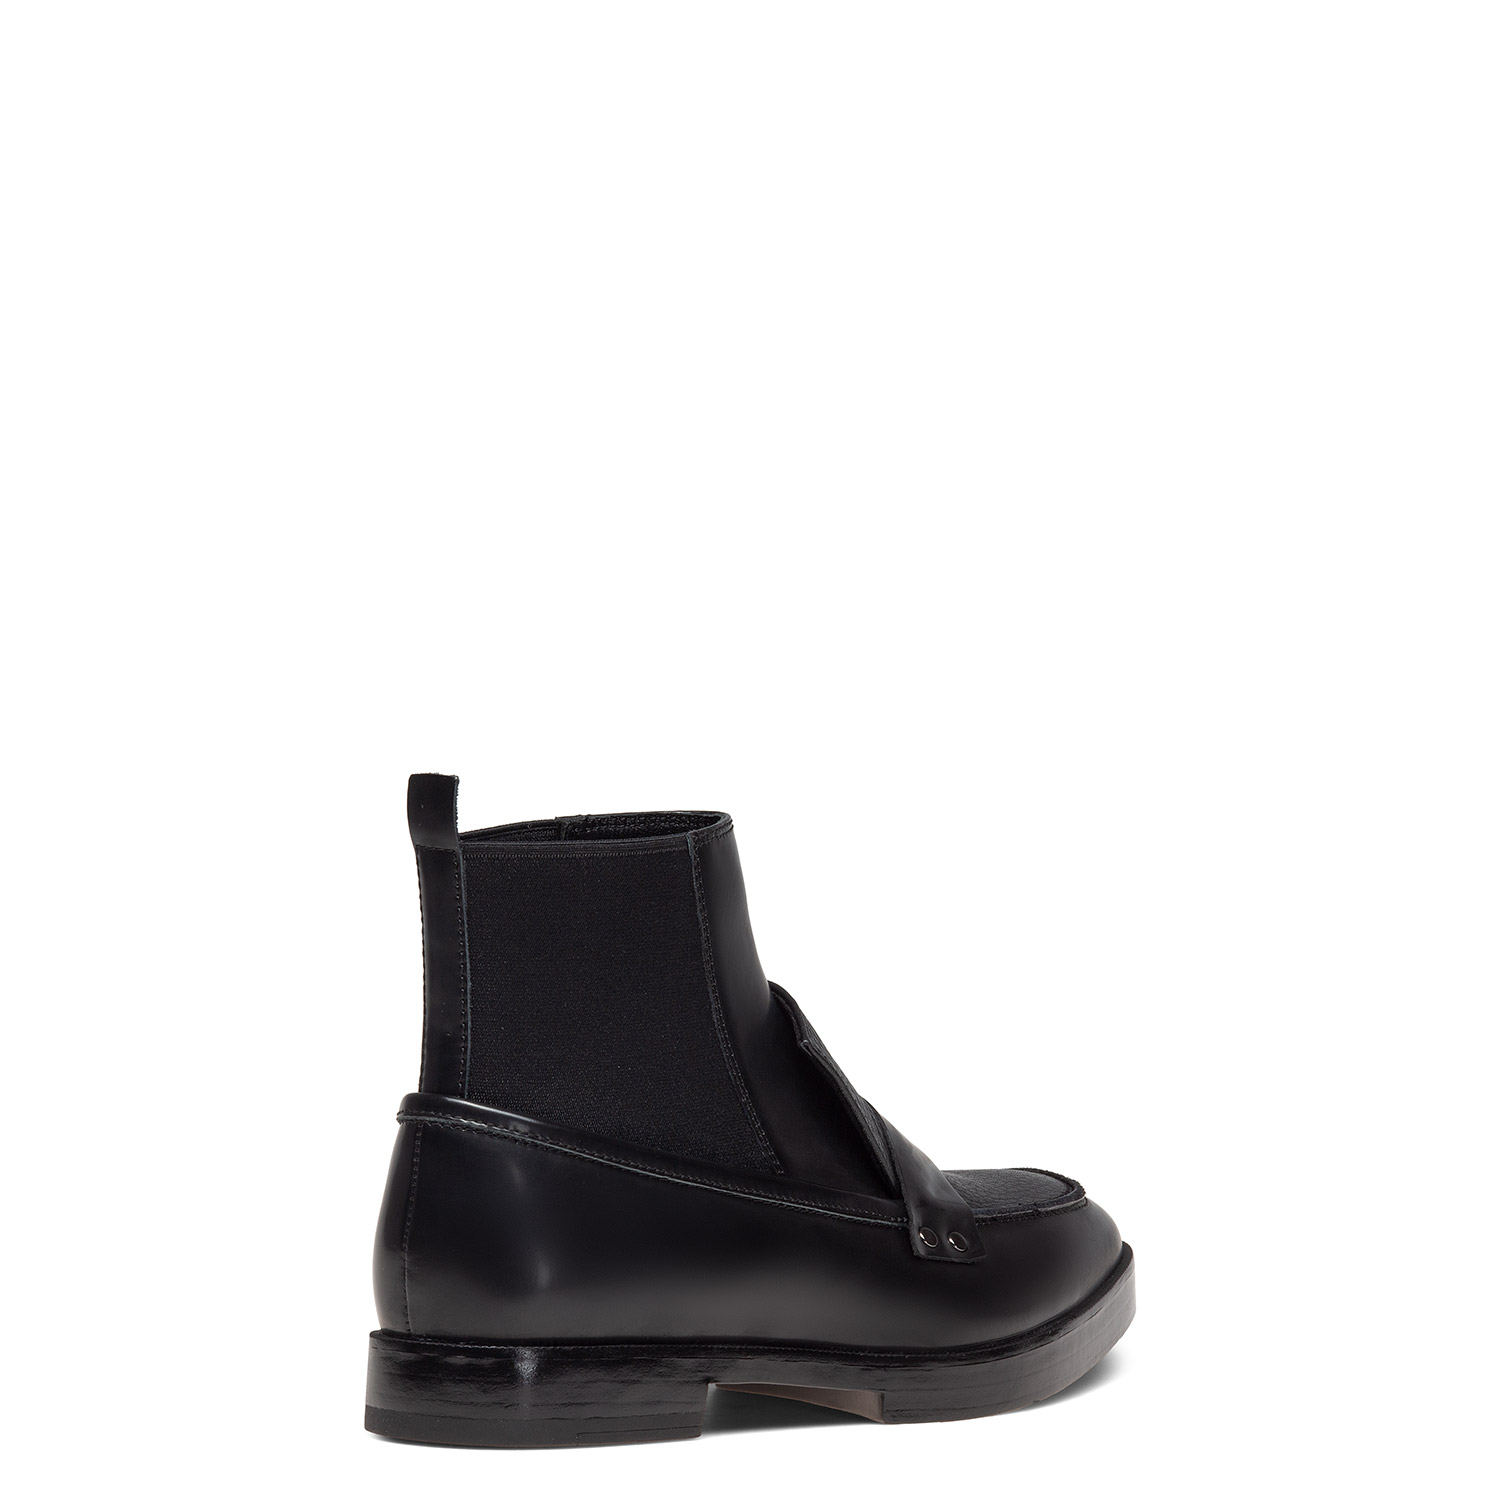 Women's ankle boots PAZOLINI JH-VEP4-1